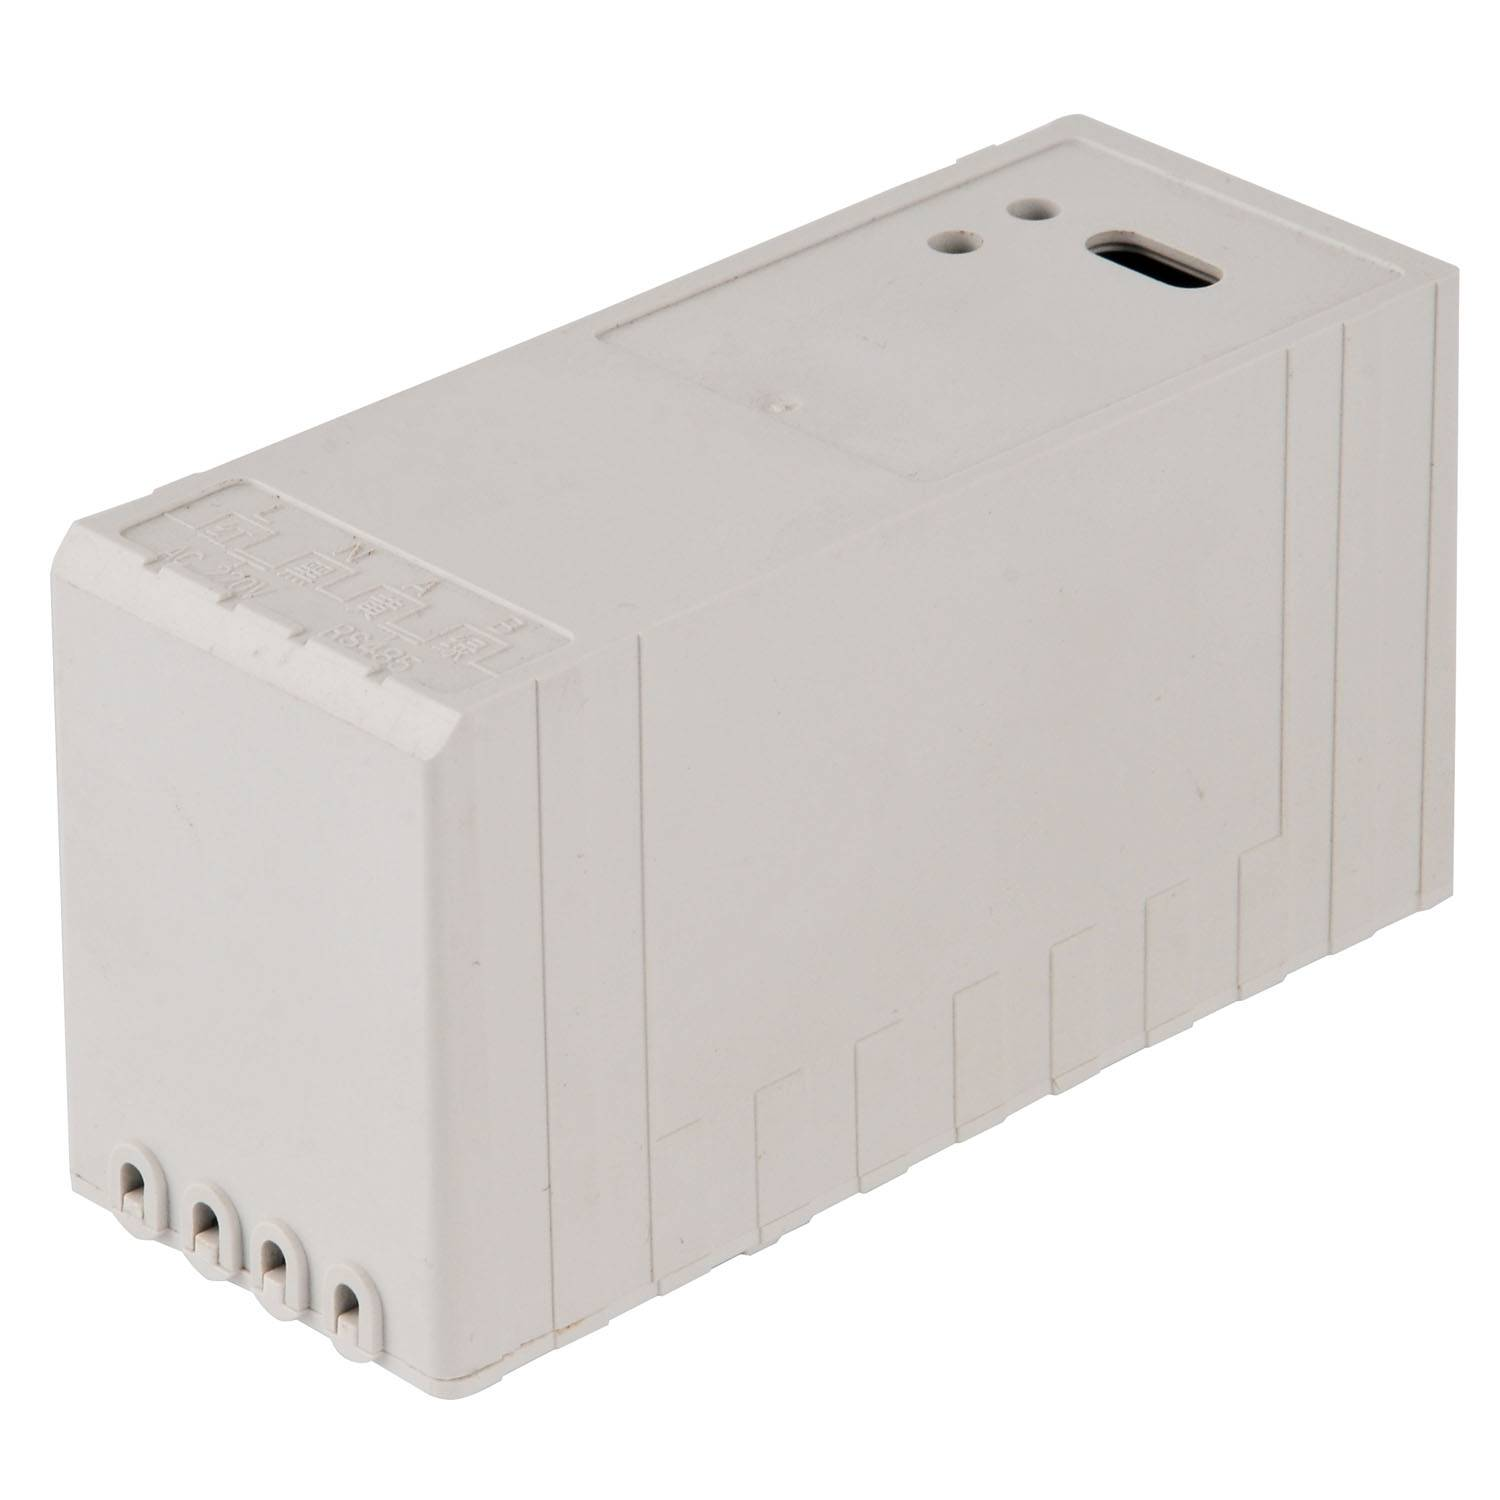 C048 single phase electrical enclosures